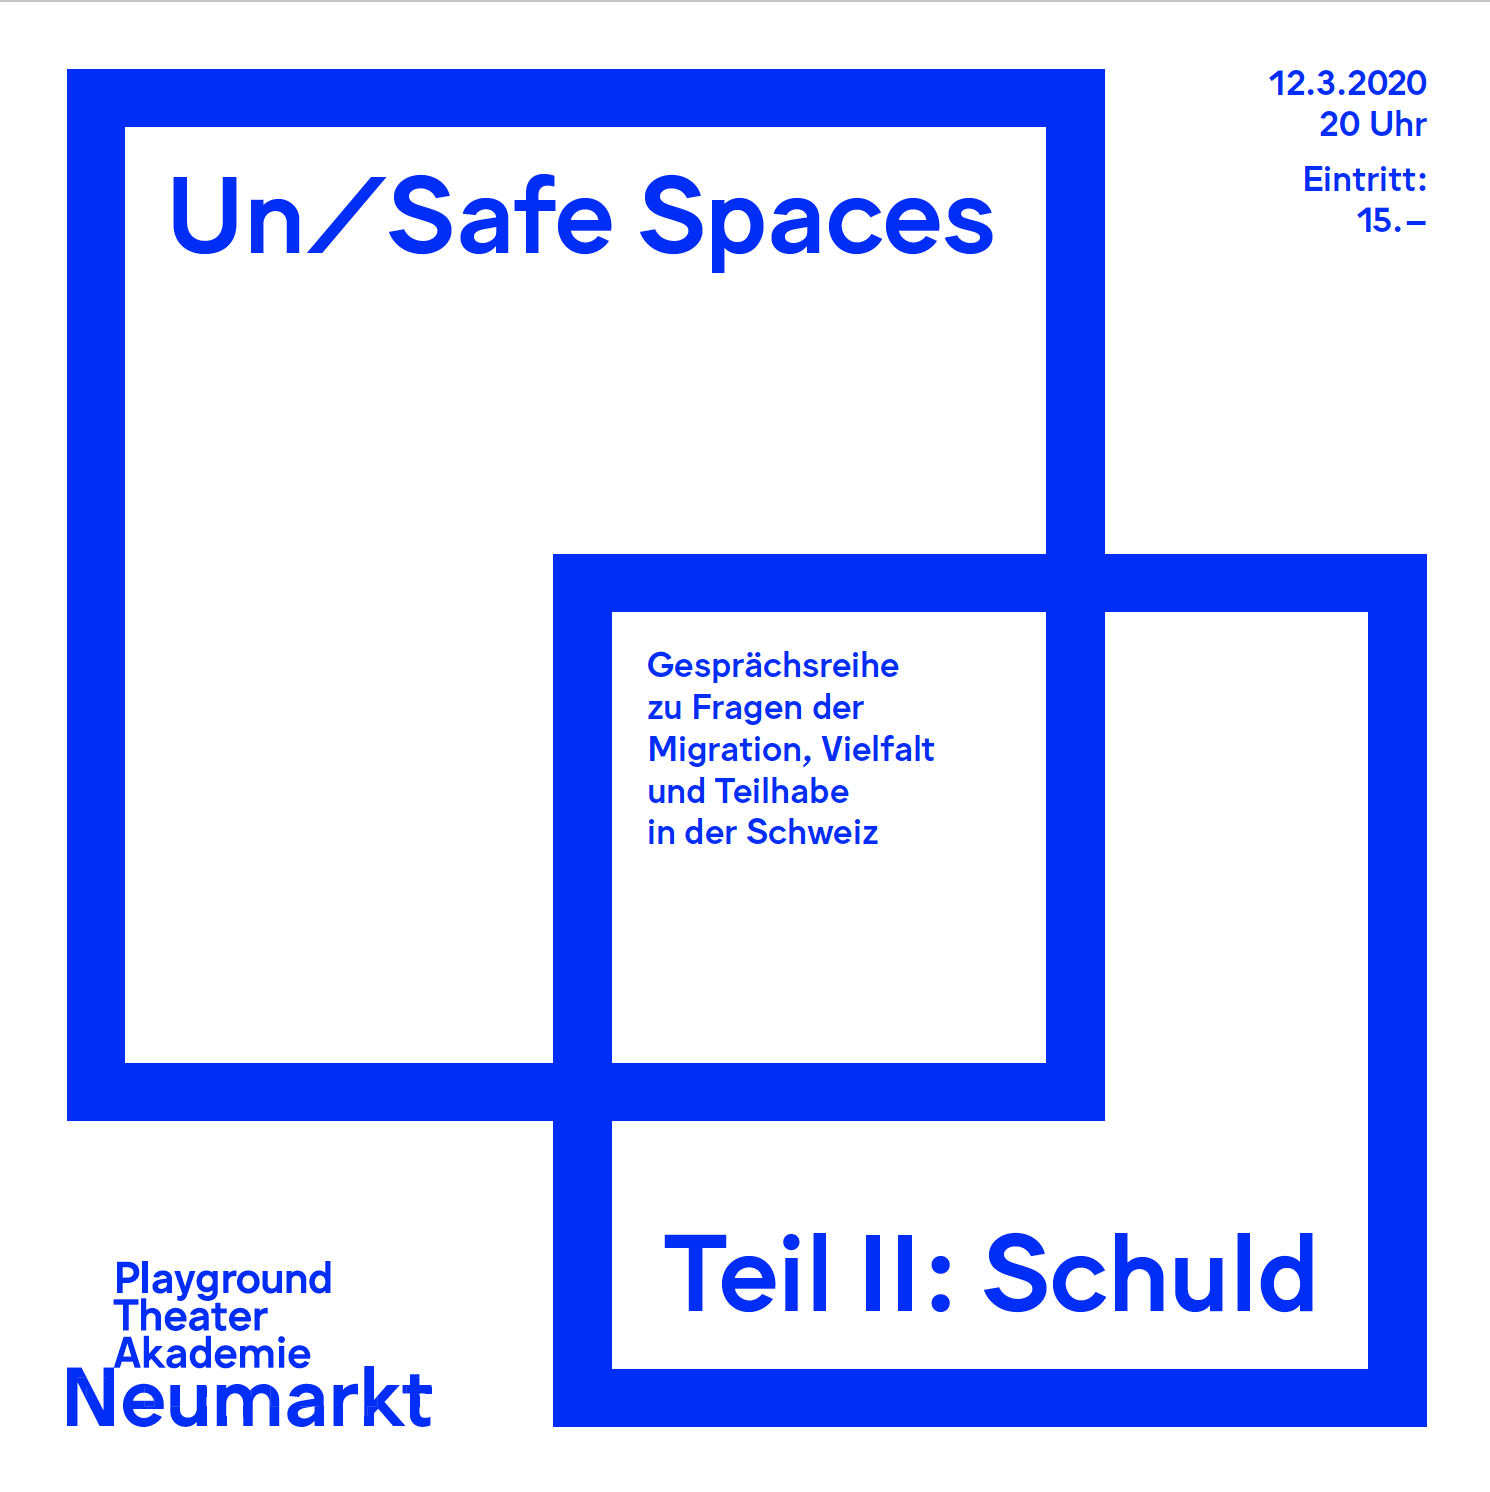 Un/Safe Spaces